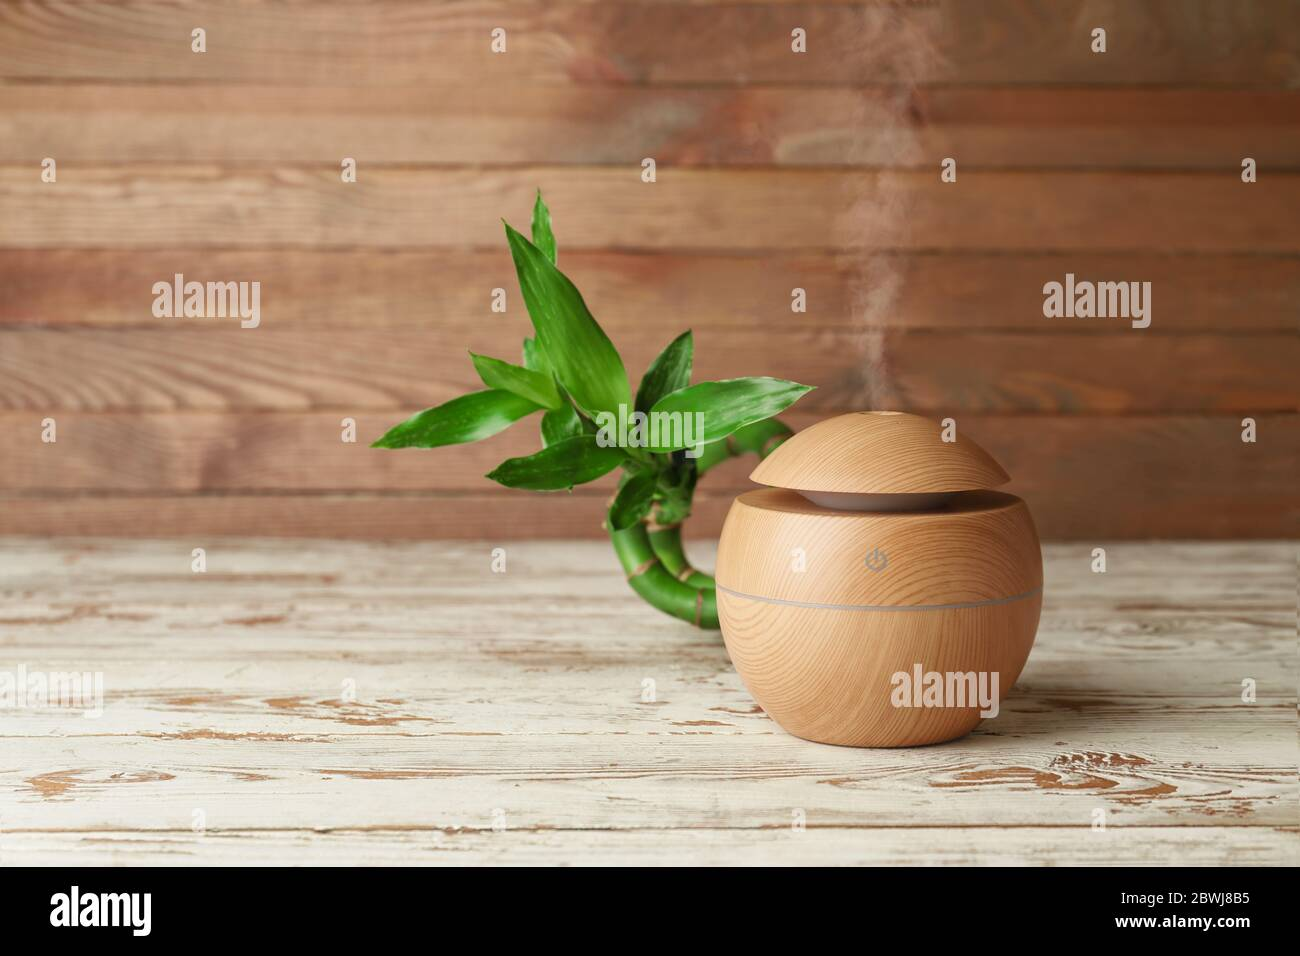 Aroma Oil Diffuser On Wooden Background Stock Photo Alamy